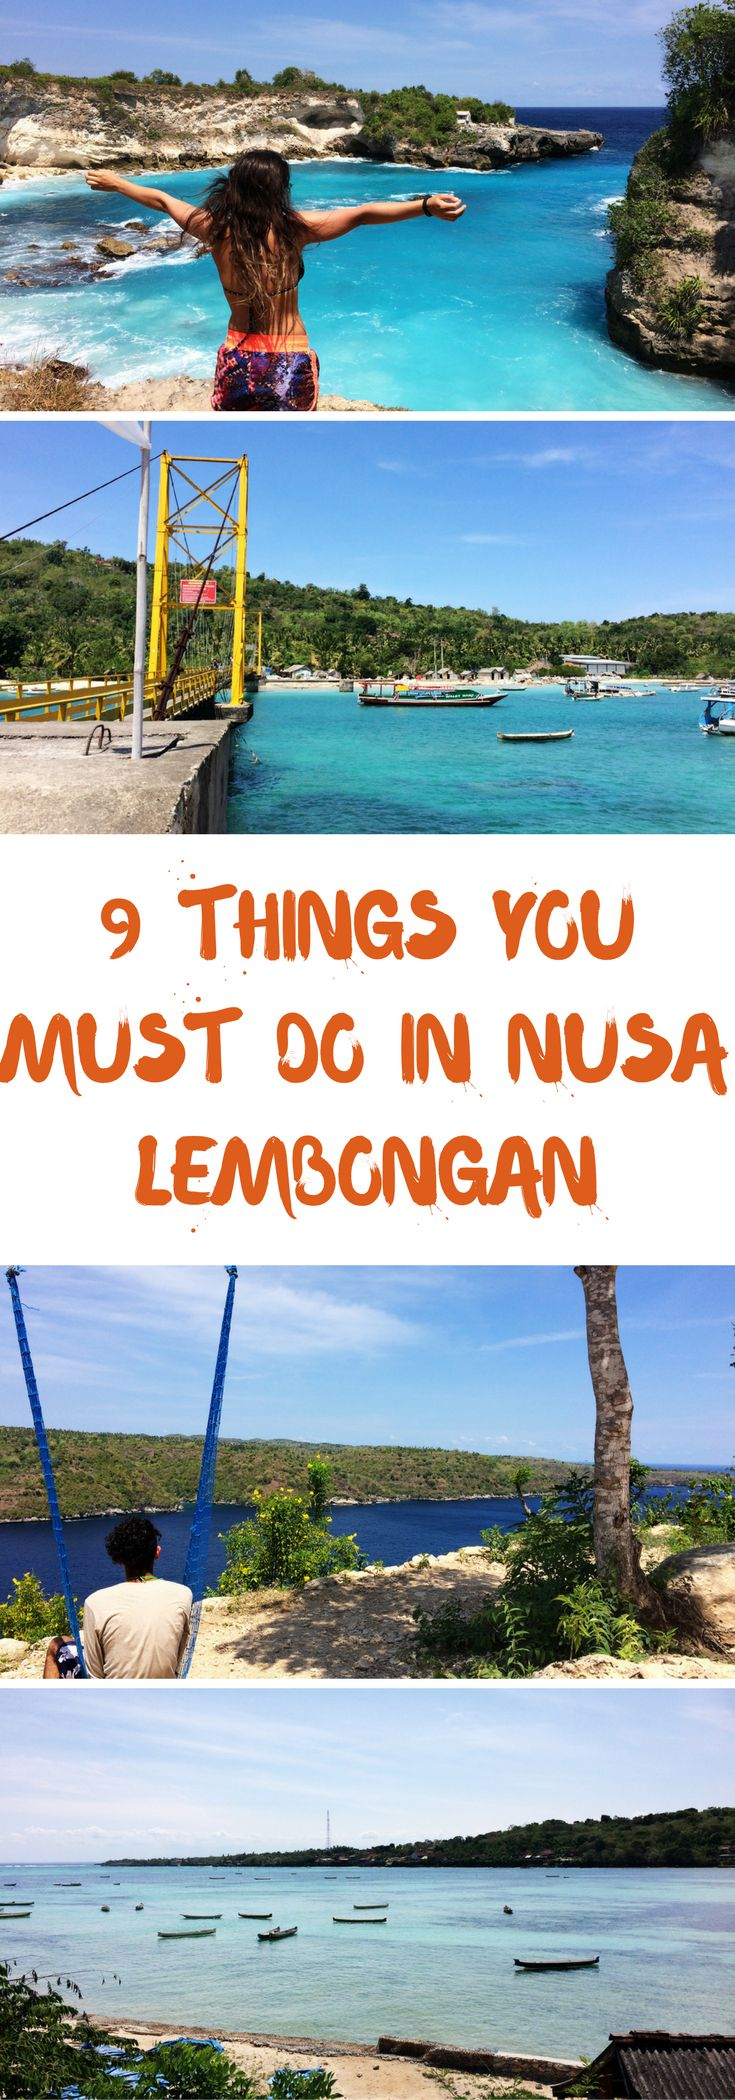 If you are traveling to Bali you must visit Nusa Lembongan! It is an island that is just 30 minutes away and it is truly amazing. Read this travel guide on what to do and see in Nusa Lembongan before you go!